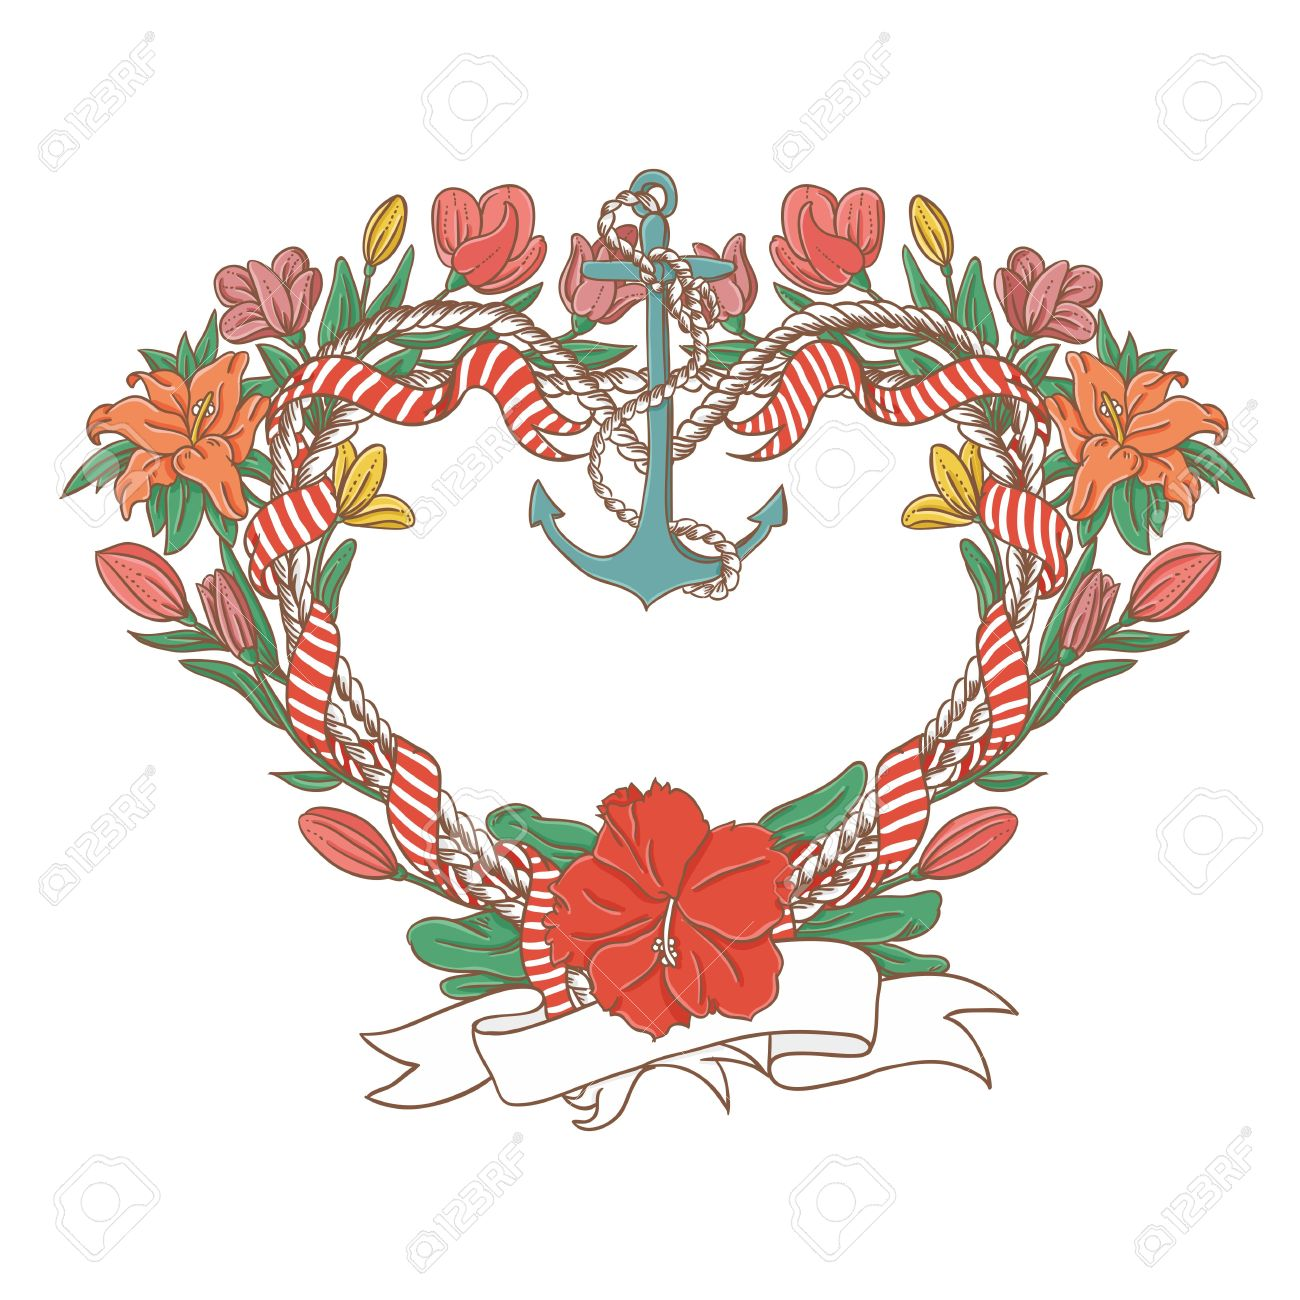 Heart shaped frame with marine elements Stock Vector - 13414616